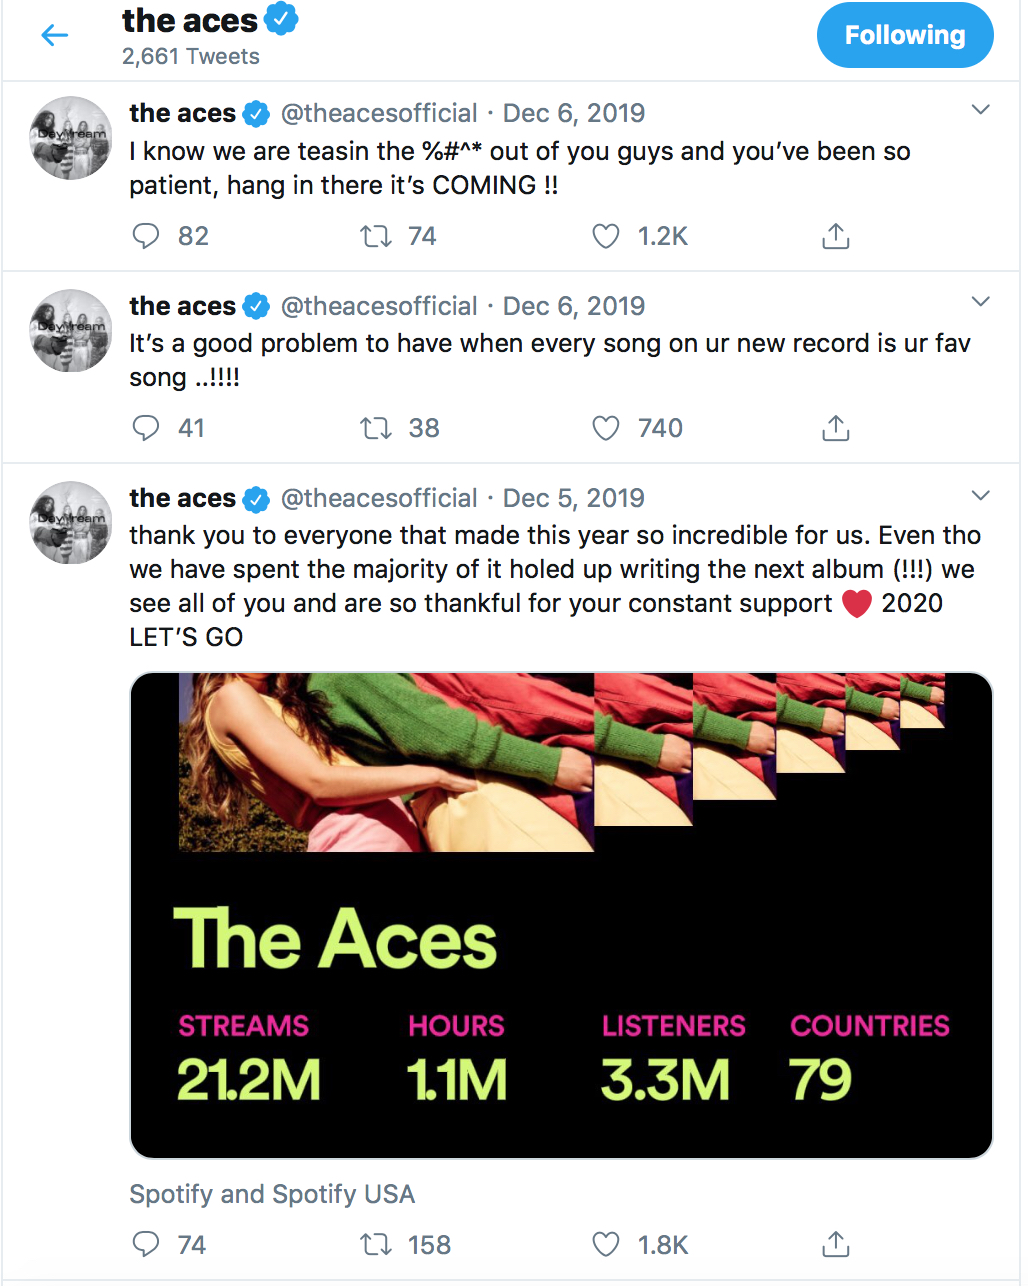 Three tweets from The Aces are shown, each giving a new update about their upcoming album.